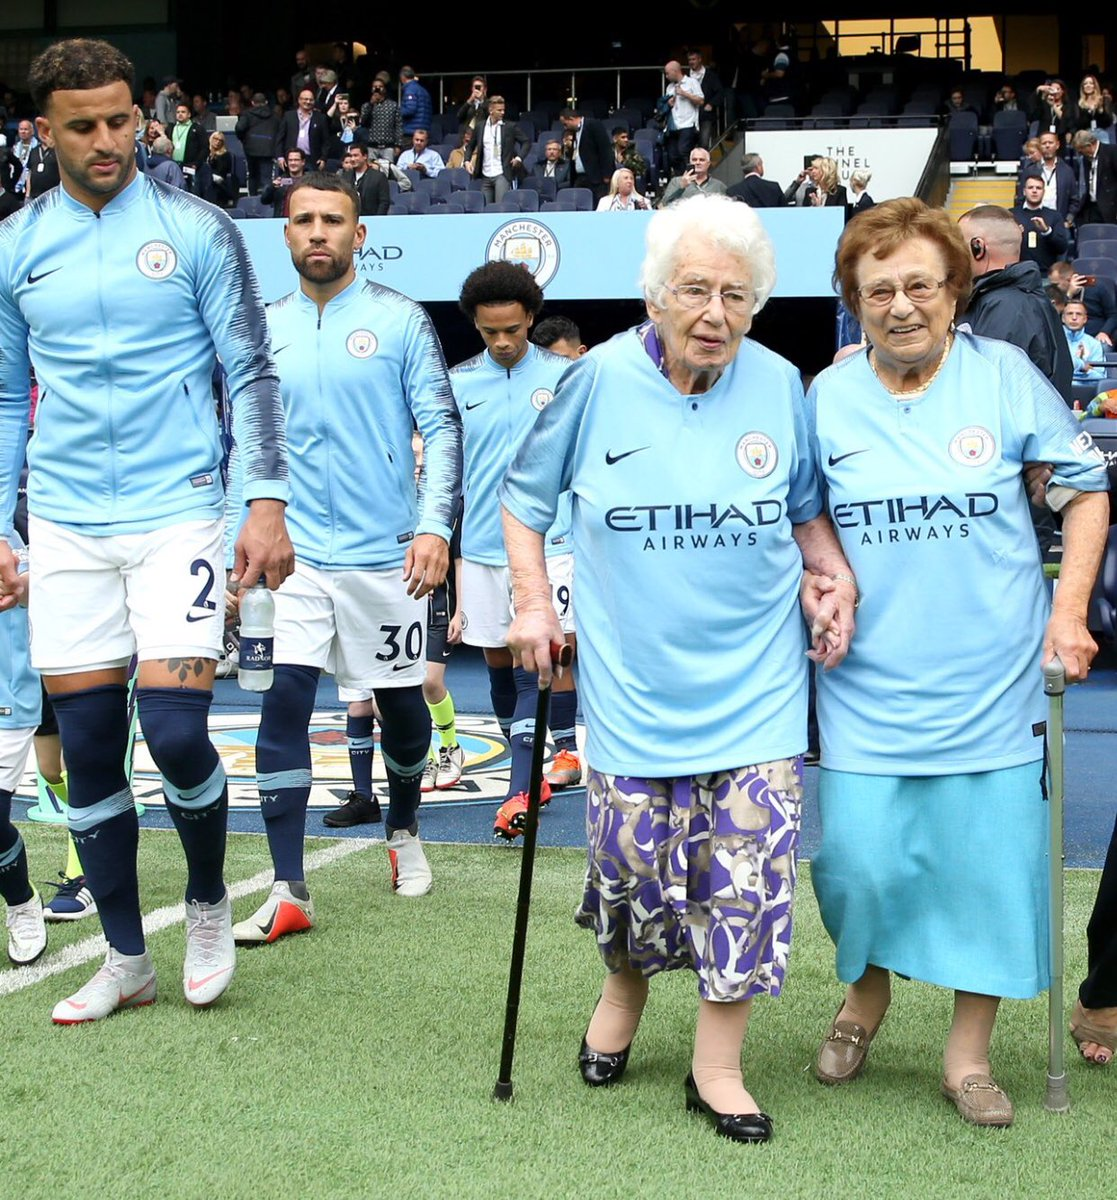 Kyle Walker hasnt seen anyone so reliant on a cane since England at the World Cup.